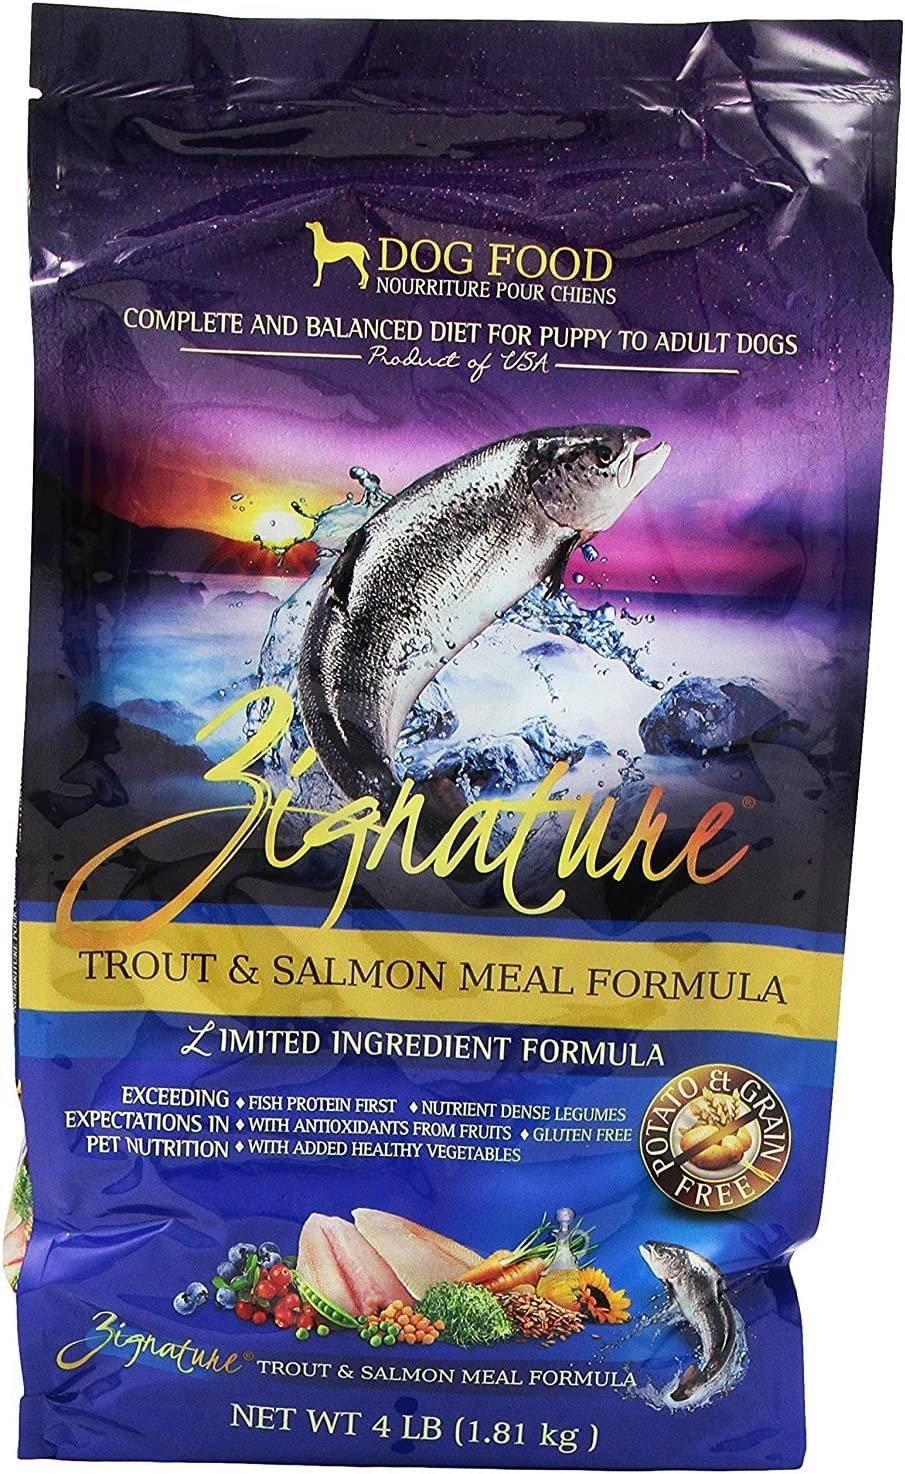 Zignature Trout and Salmon Dry Dog Food, 4 lb. Bag. Fast Delivery, by Just Jak's Pet Market